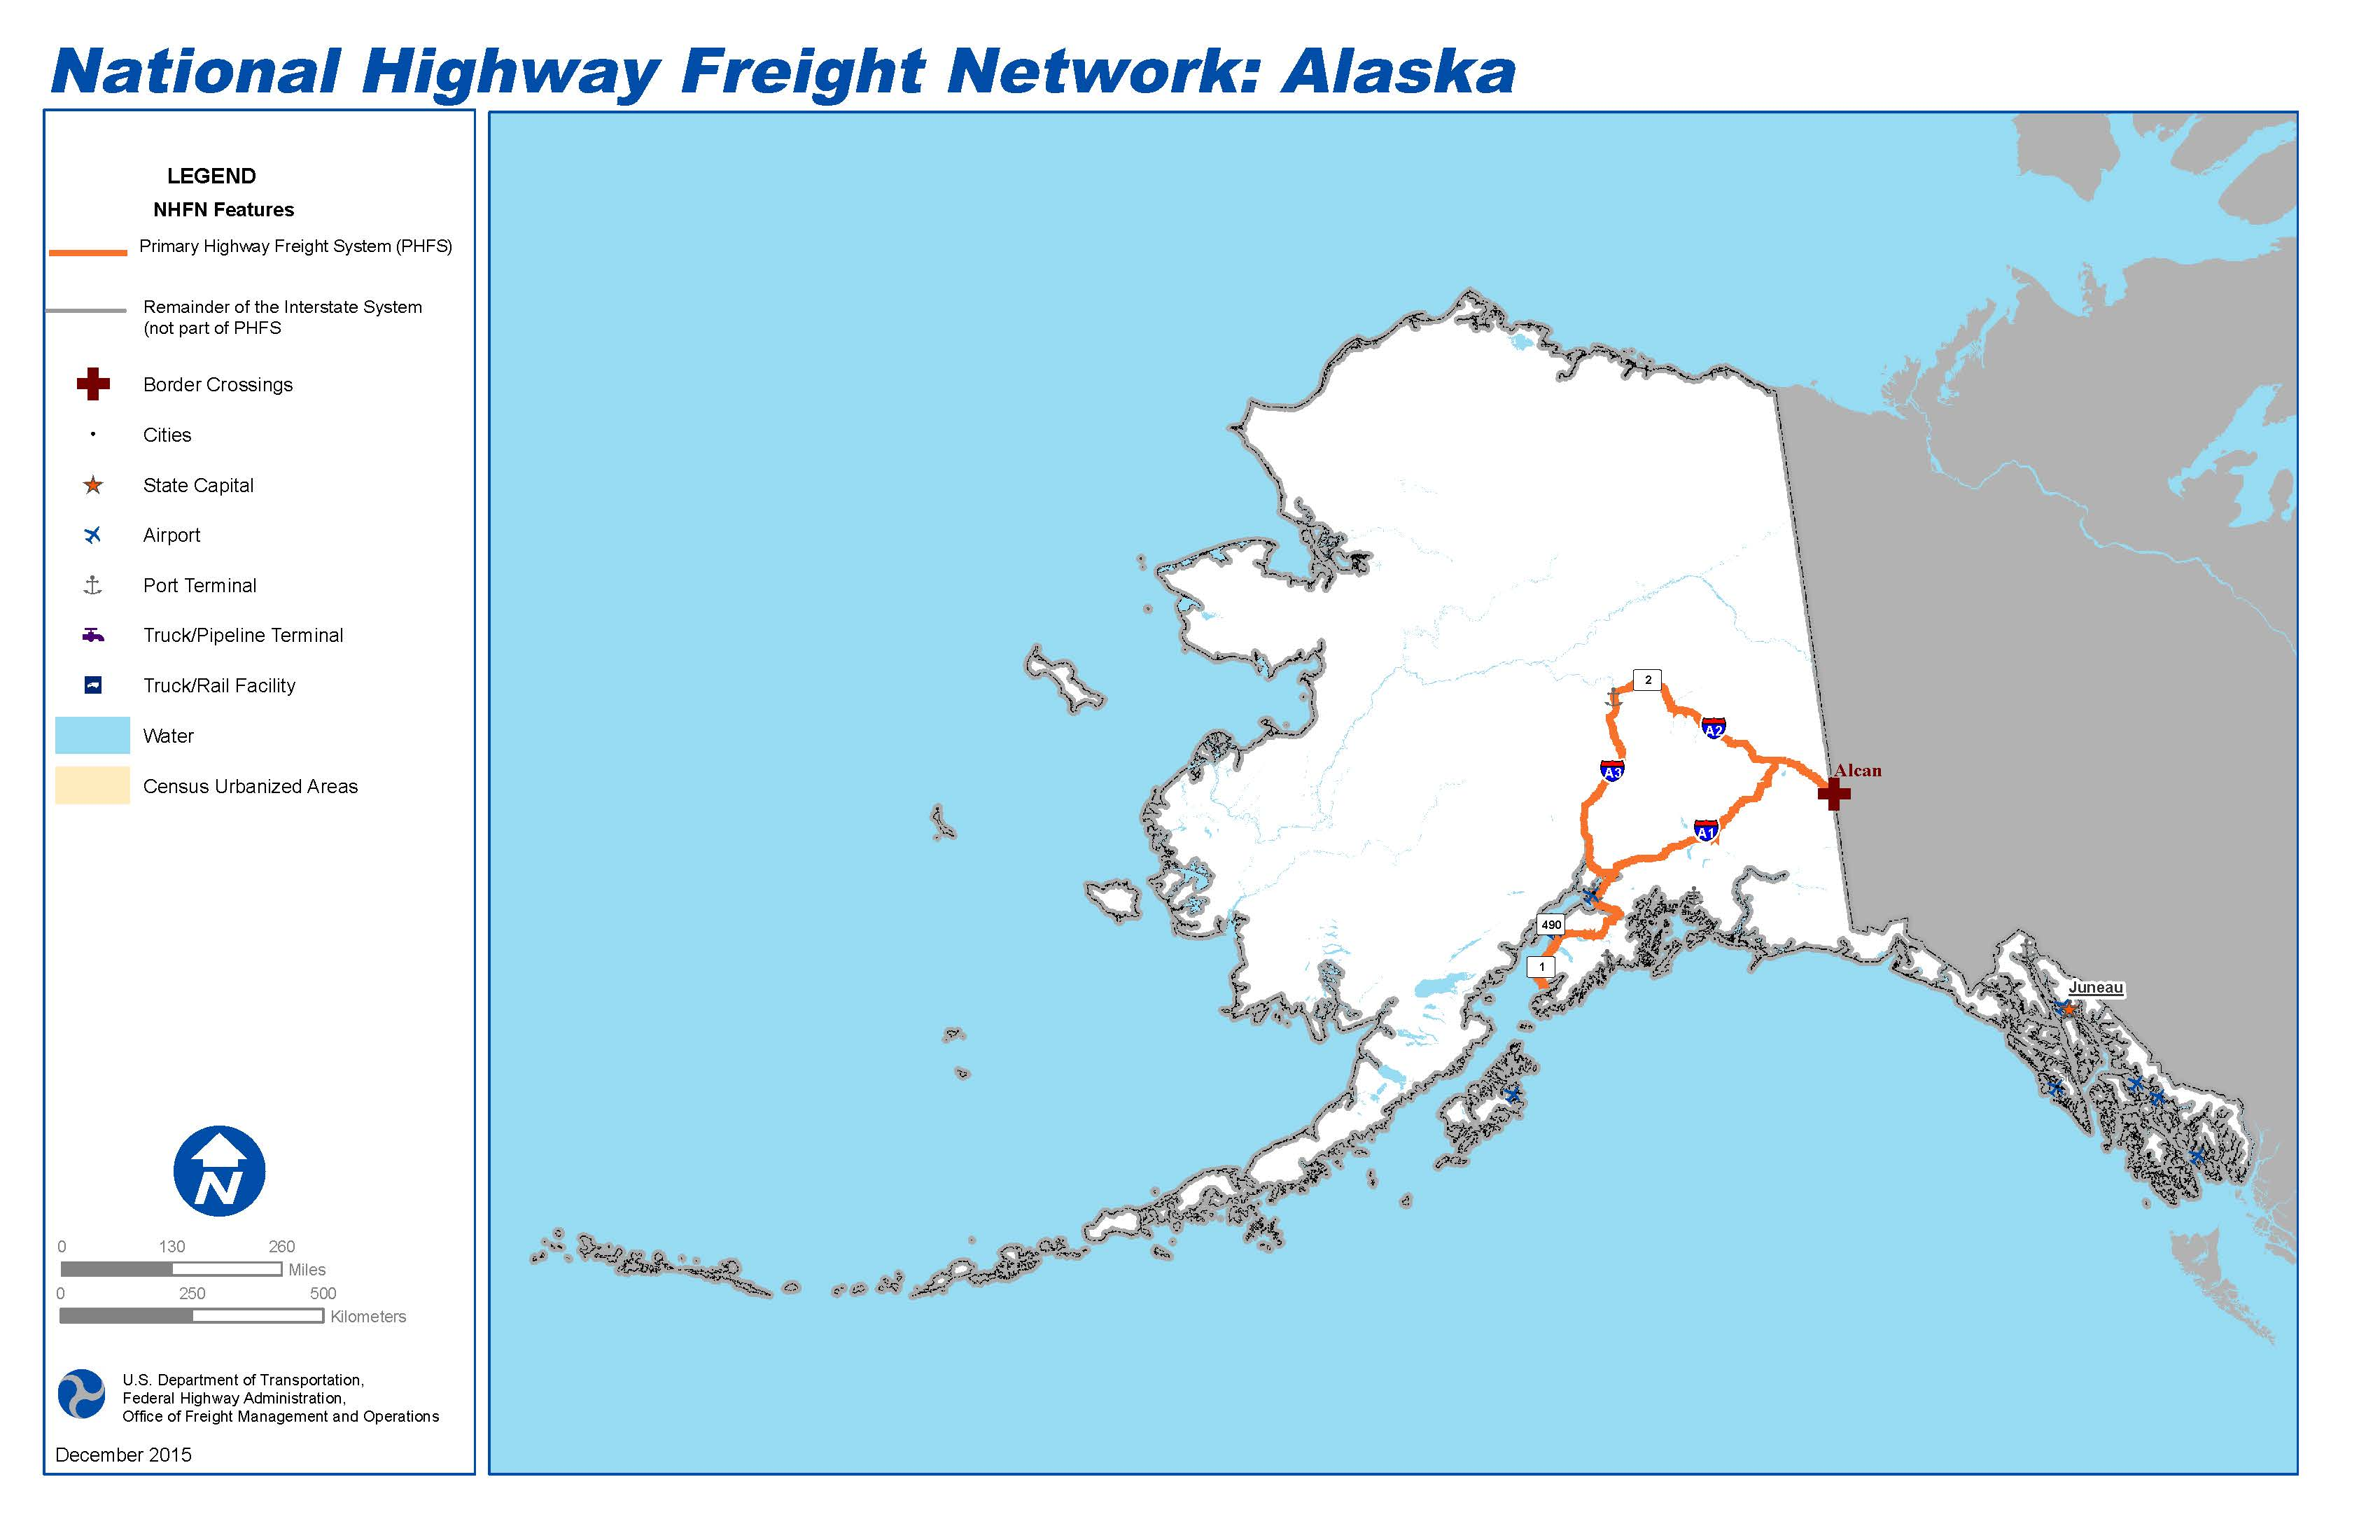 Map Of Alaska Highway System.National Highway Freight Network Map And Tables For Alaska Fhwa